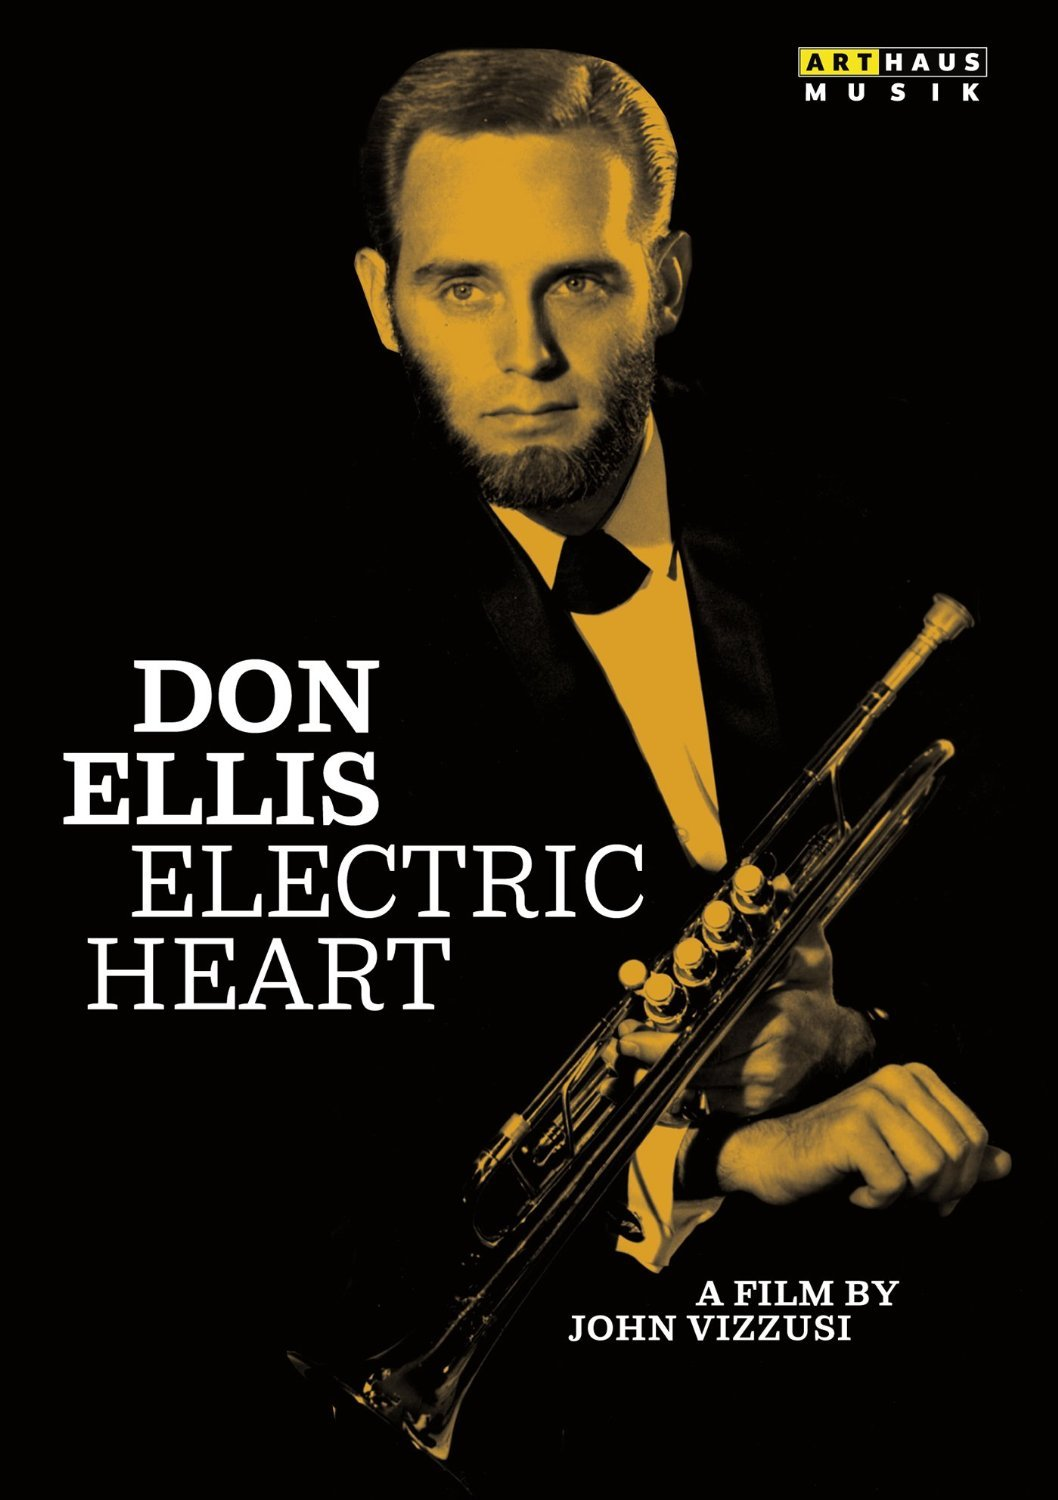 Don Electric Heart DVD Review